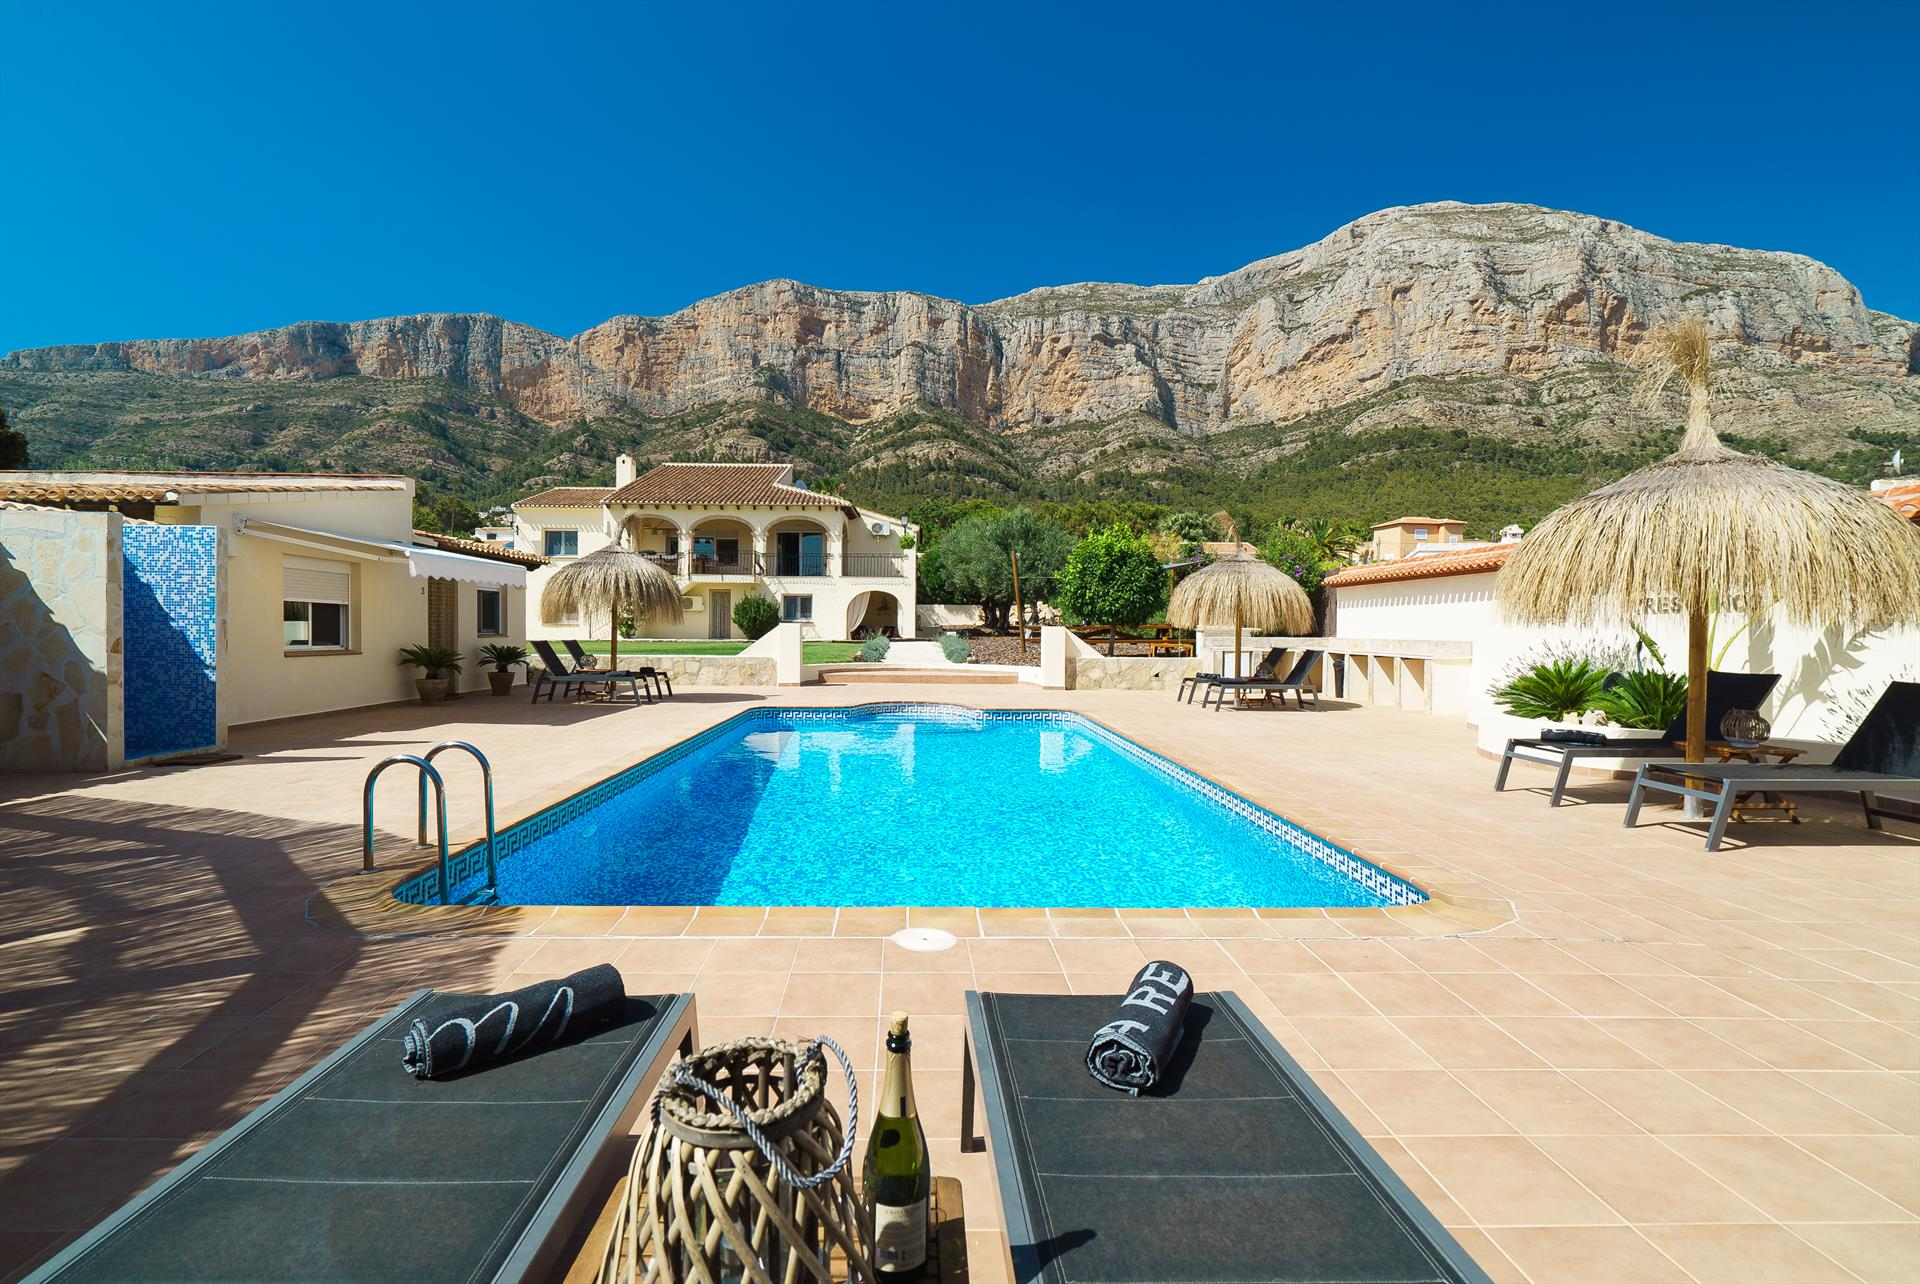 Tres Ninos 12 pax, Wonderful and comfortable villa  with private pool in Javea, on the Costa Blanca, Spain for 12 persons.....